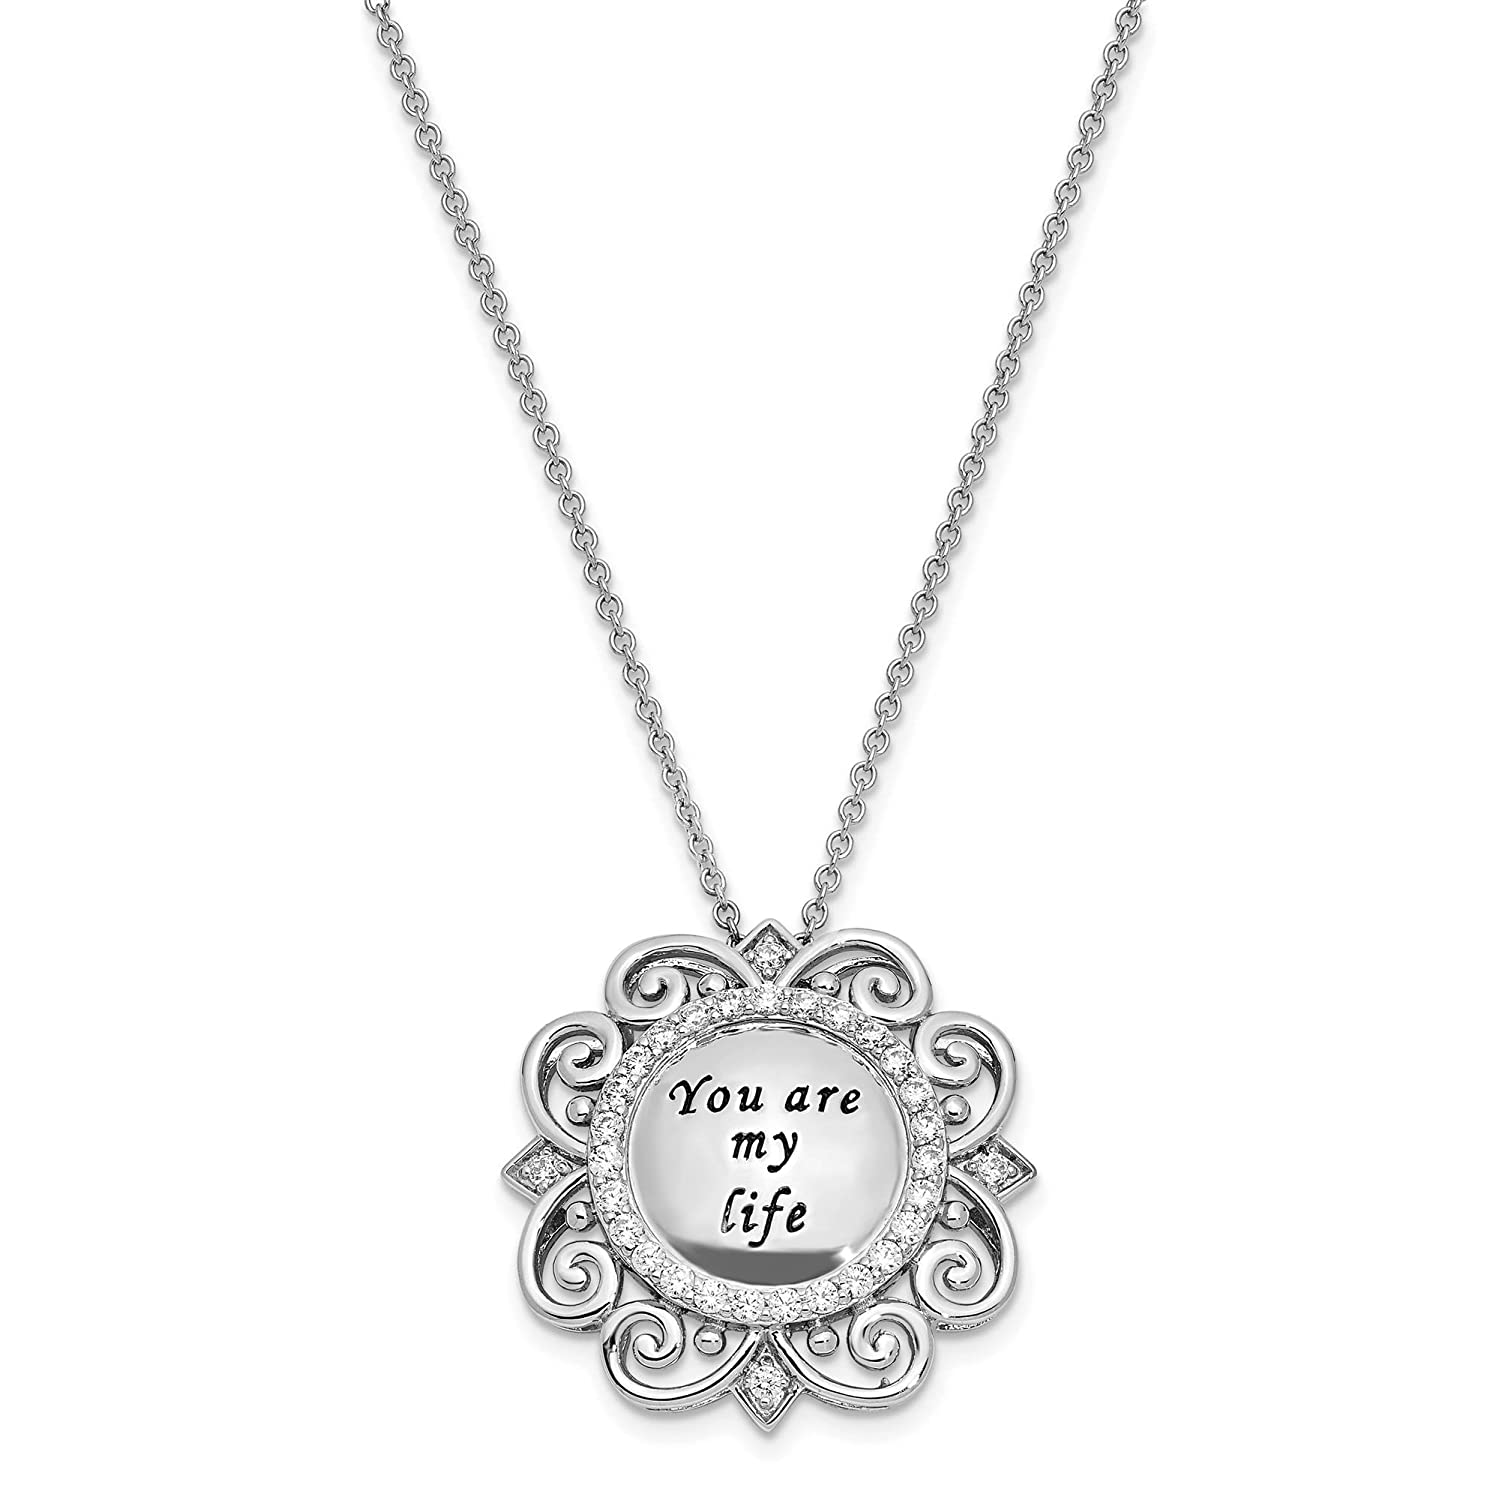 Sterling Silver Polished /& Antiqued CZ You Are My Life Pendant Necklace 18 by Sentimental Expressions